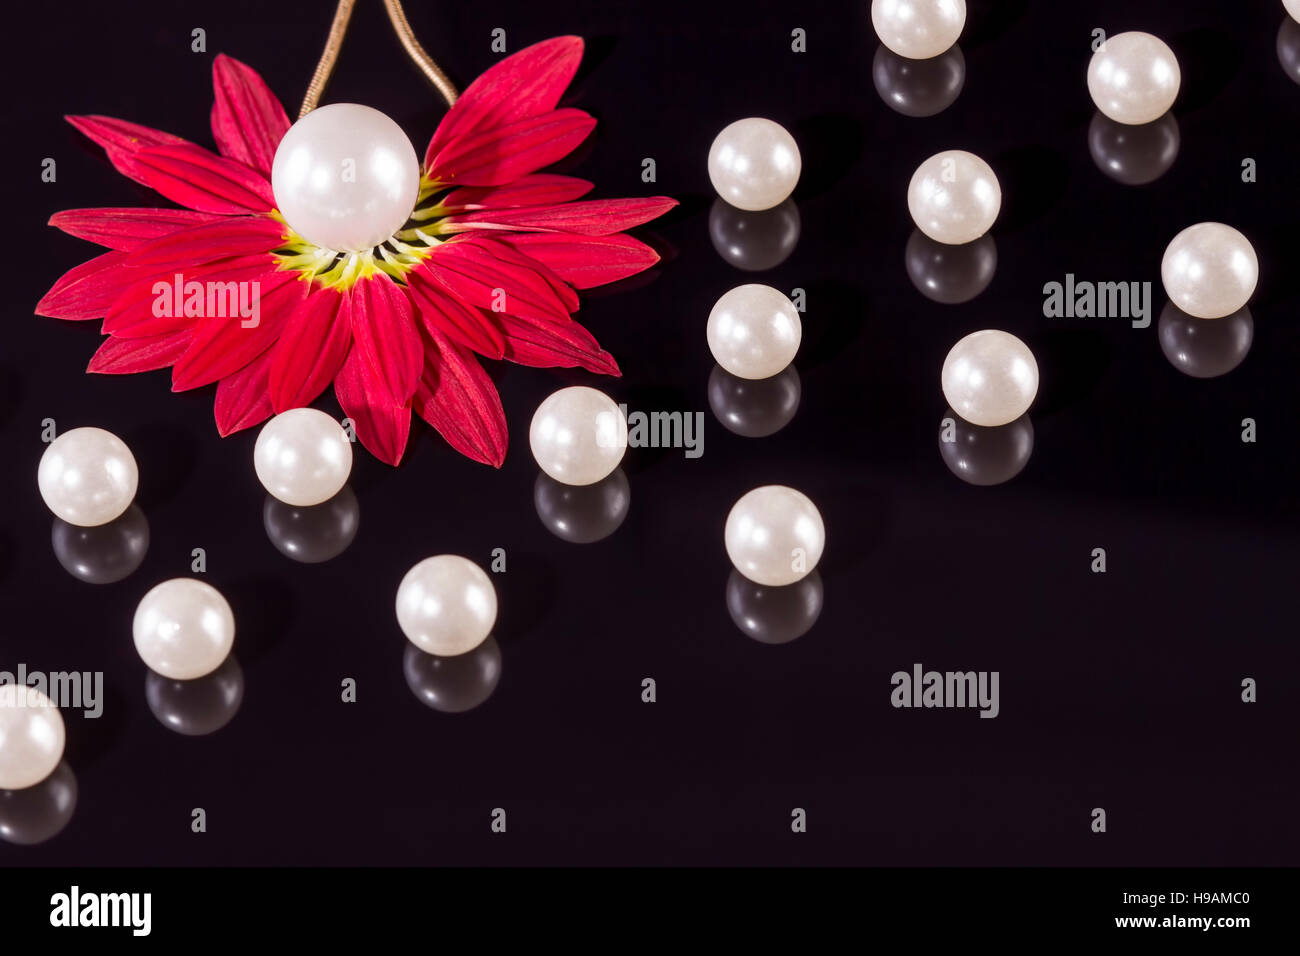 White pearls necklace on black background. Focus on the big pearl from the left corner over red petals! - Stock Image